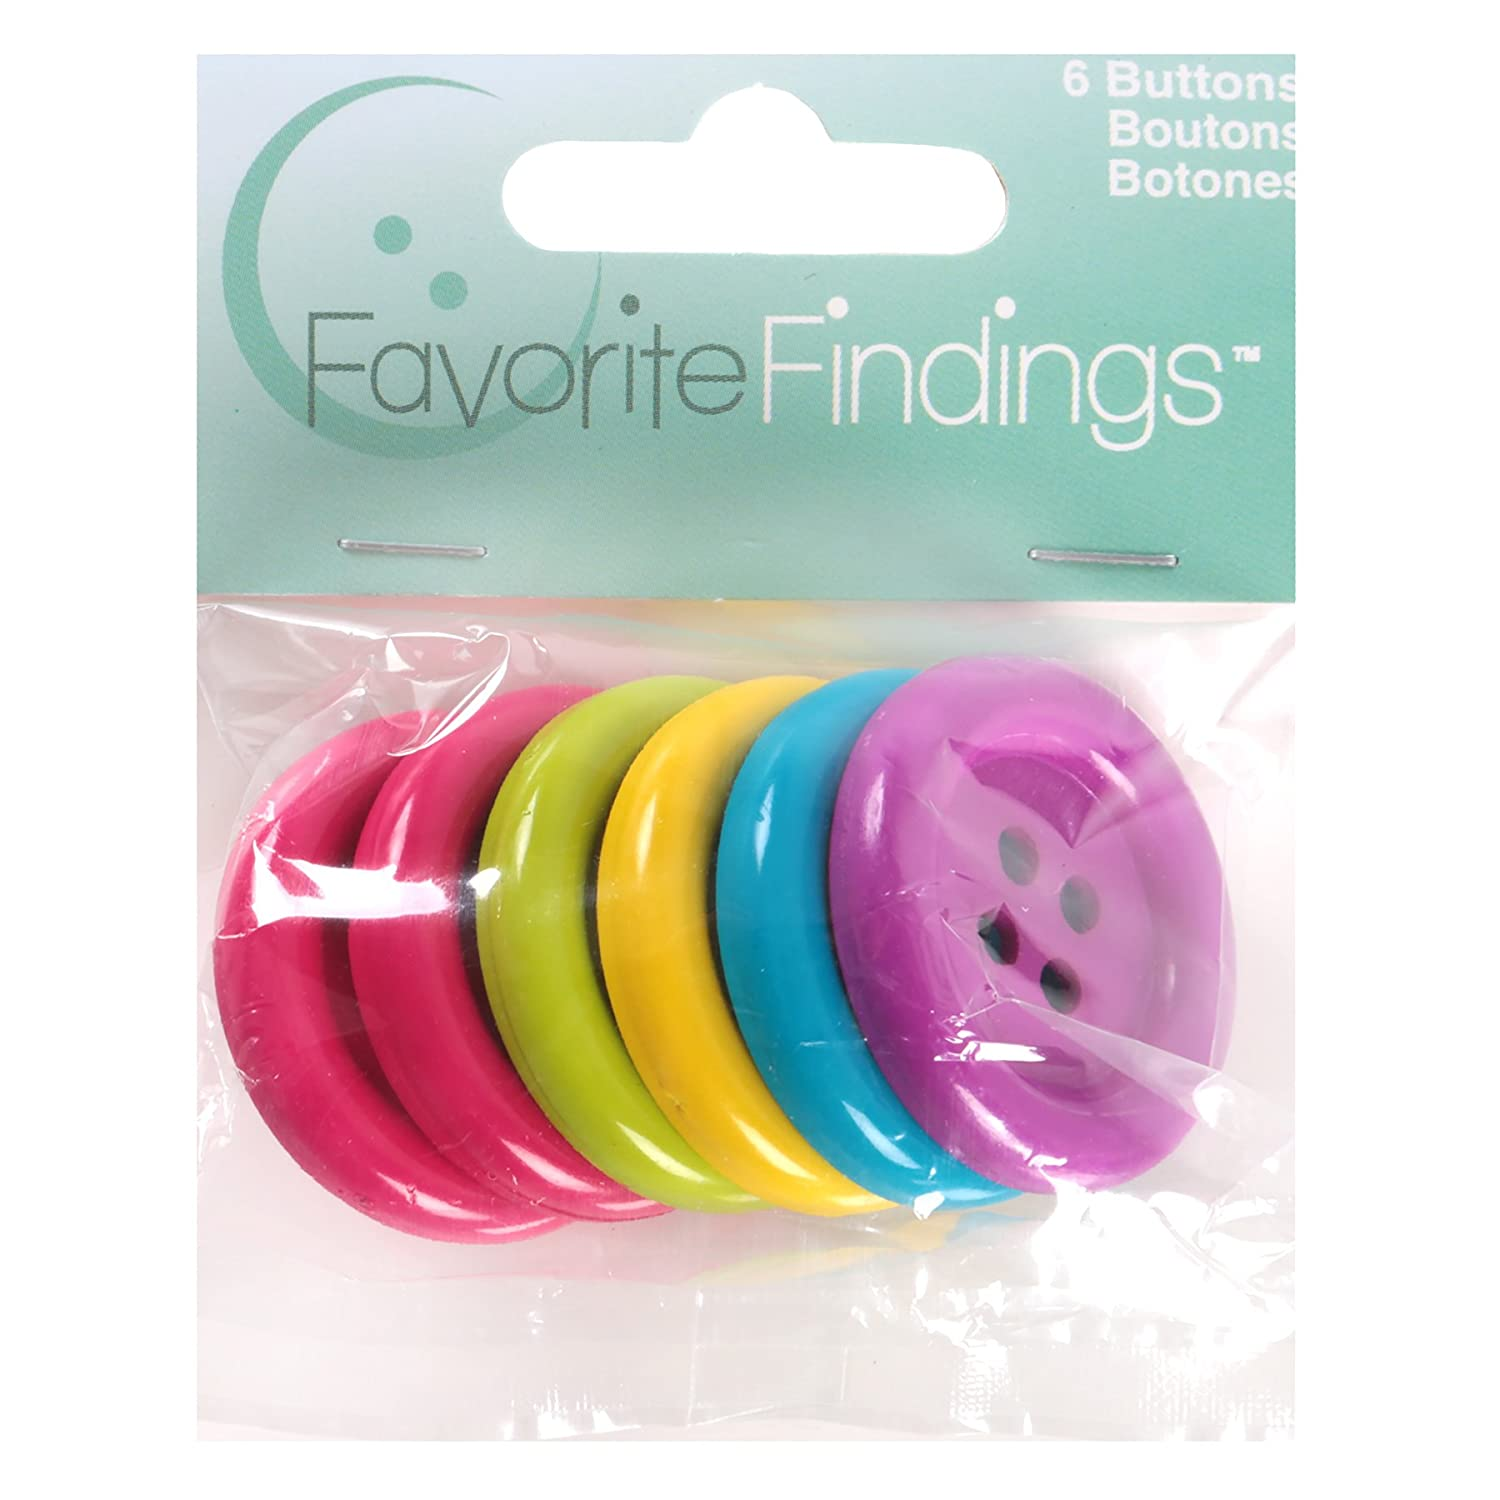 Blumenthal Lansing Larger Round Buttons, 6 Pack All One Size and Style, Colors Included Hot Pink, Bright Green, Yellow, Turquoise and Purple 5500BIG-500